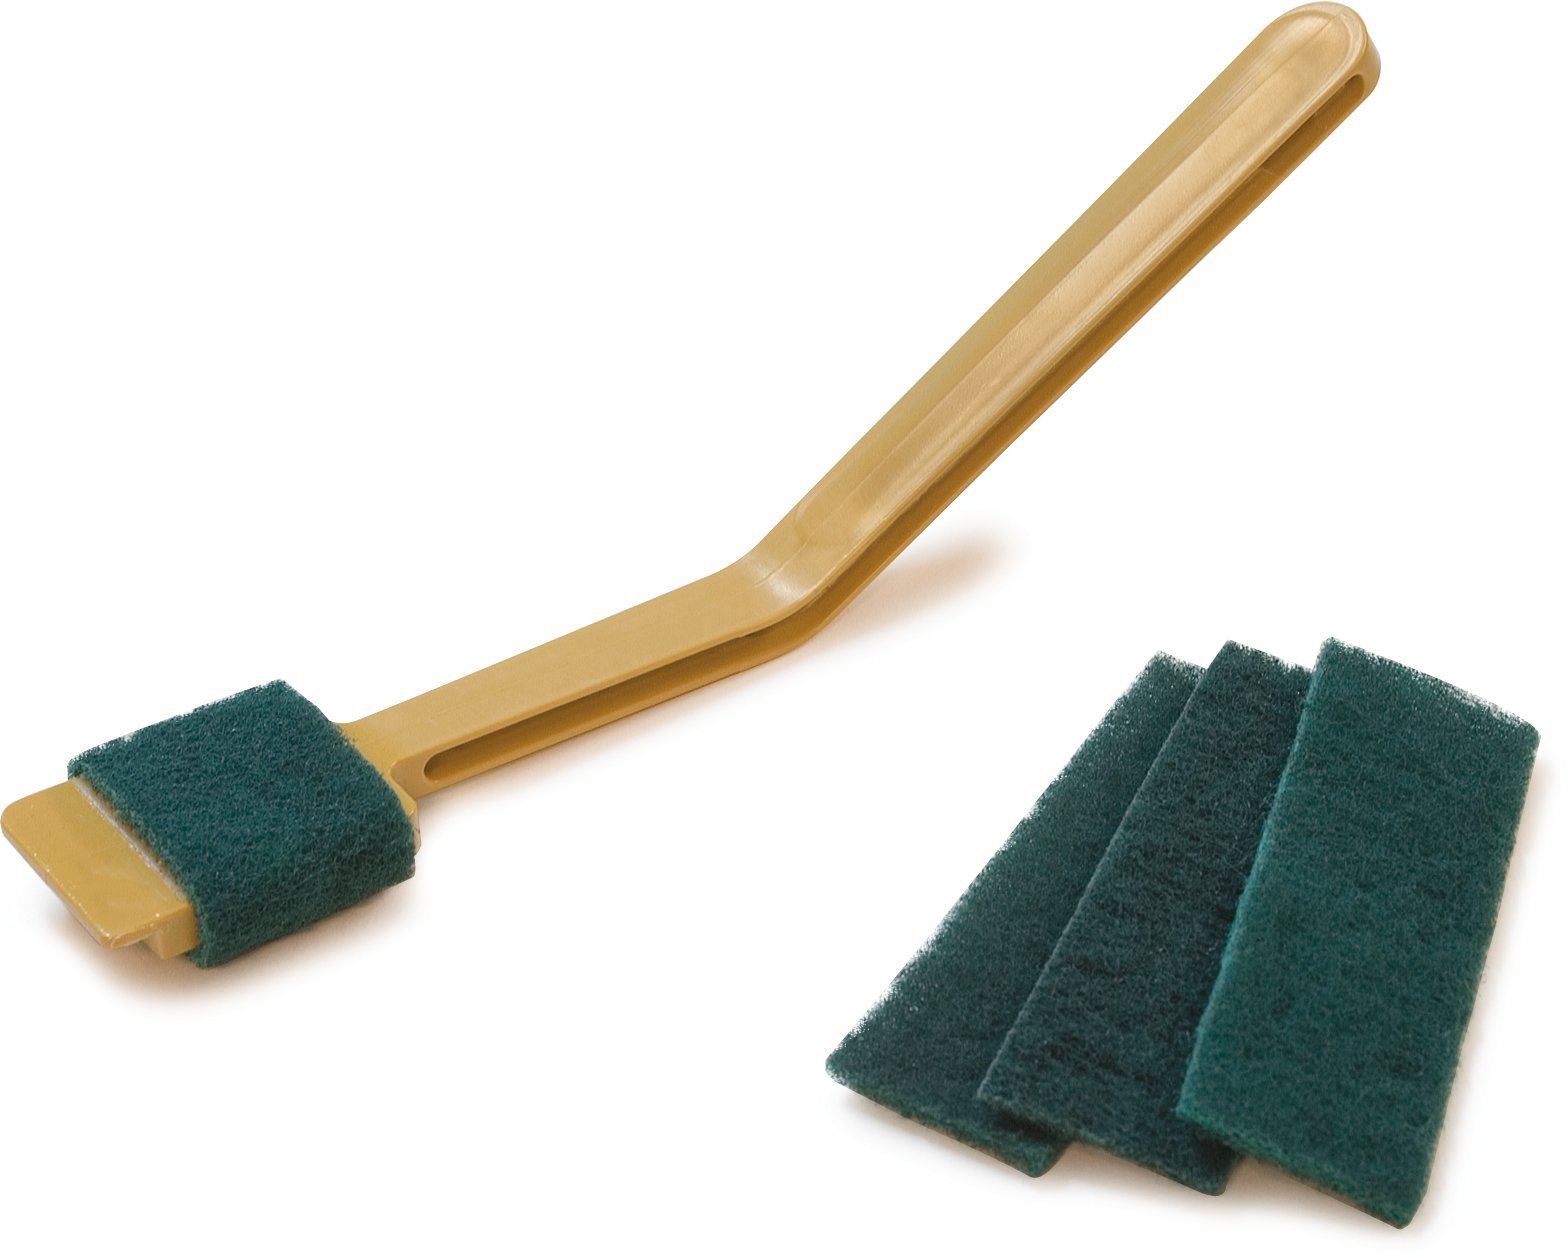 Carlisle 4072908 Deli Slicer Scrub Pads, 4-1/2'' Length x 1.62'' Width, Green (Pack of 720) by Carlisle